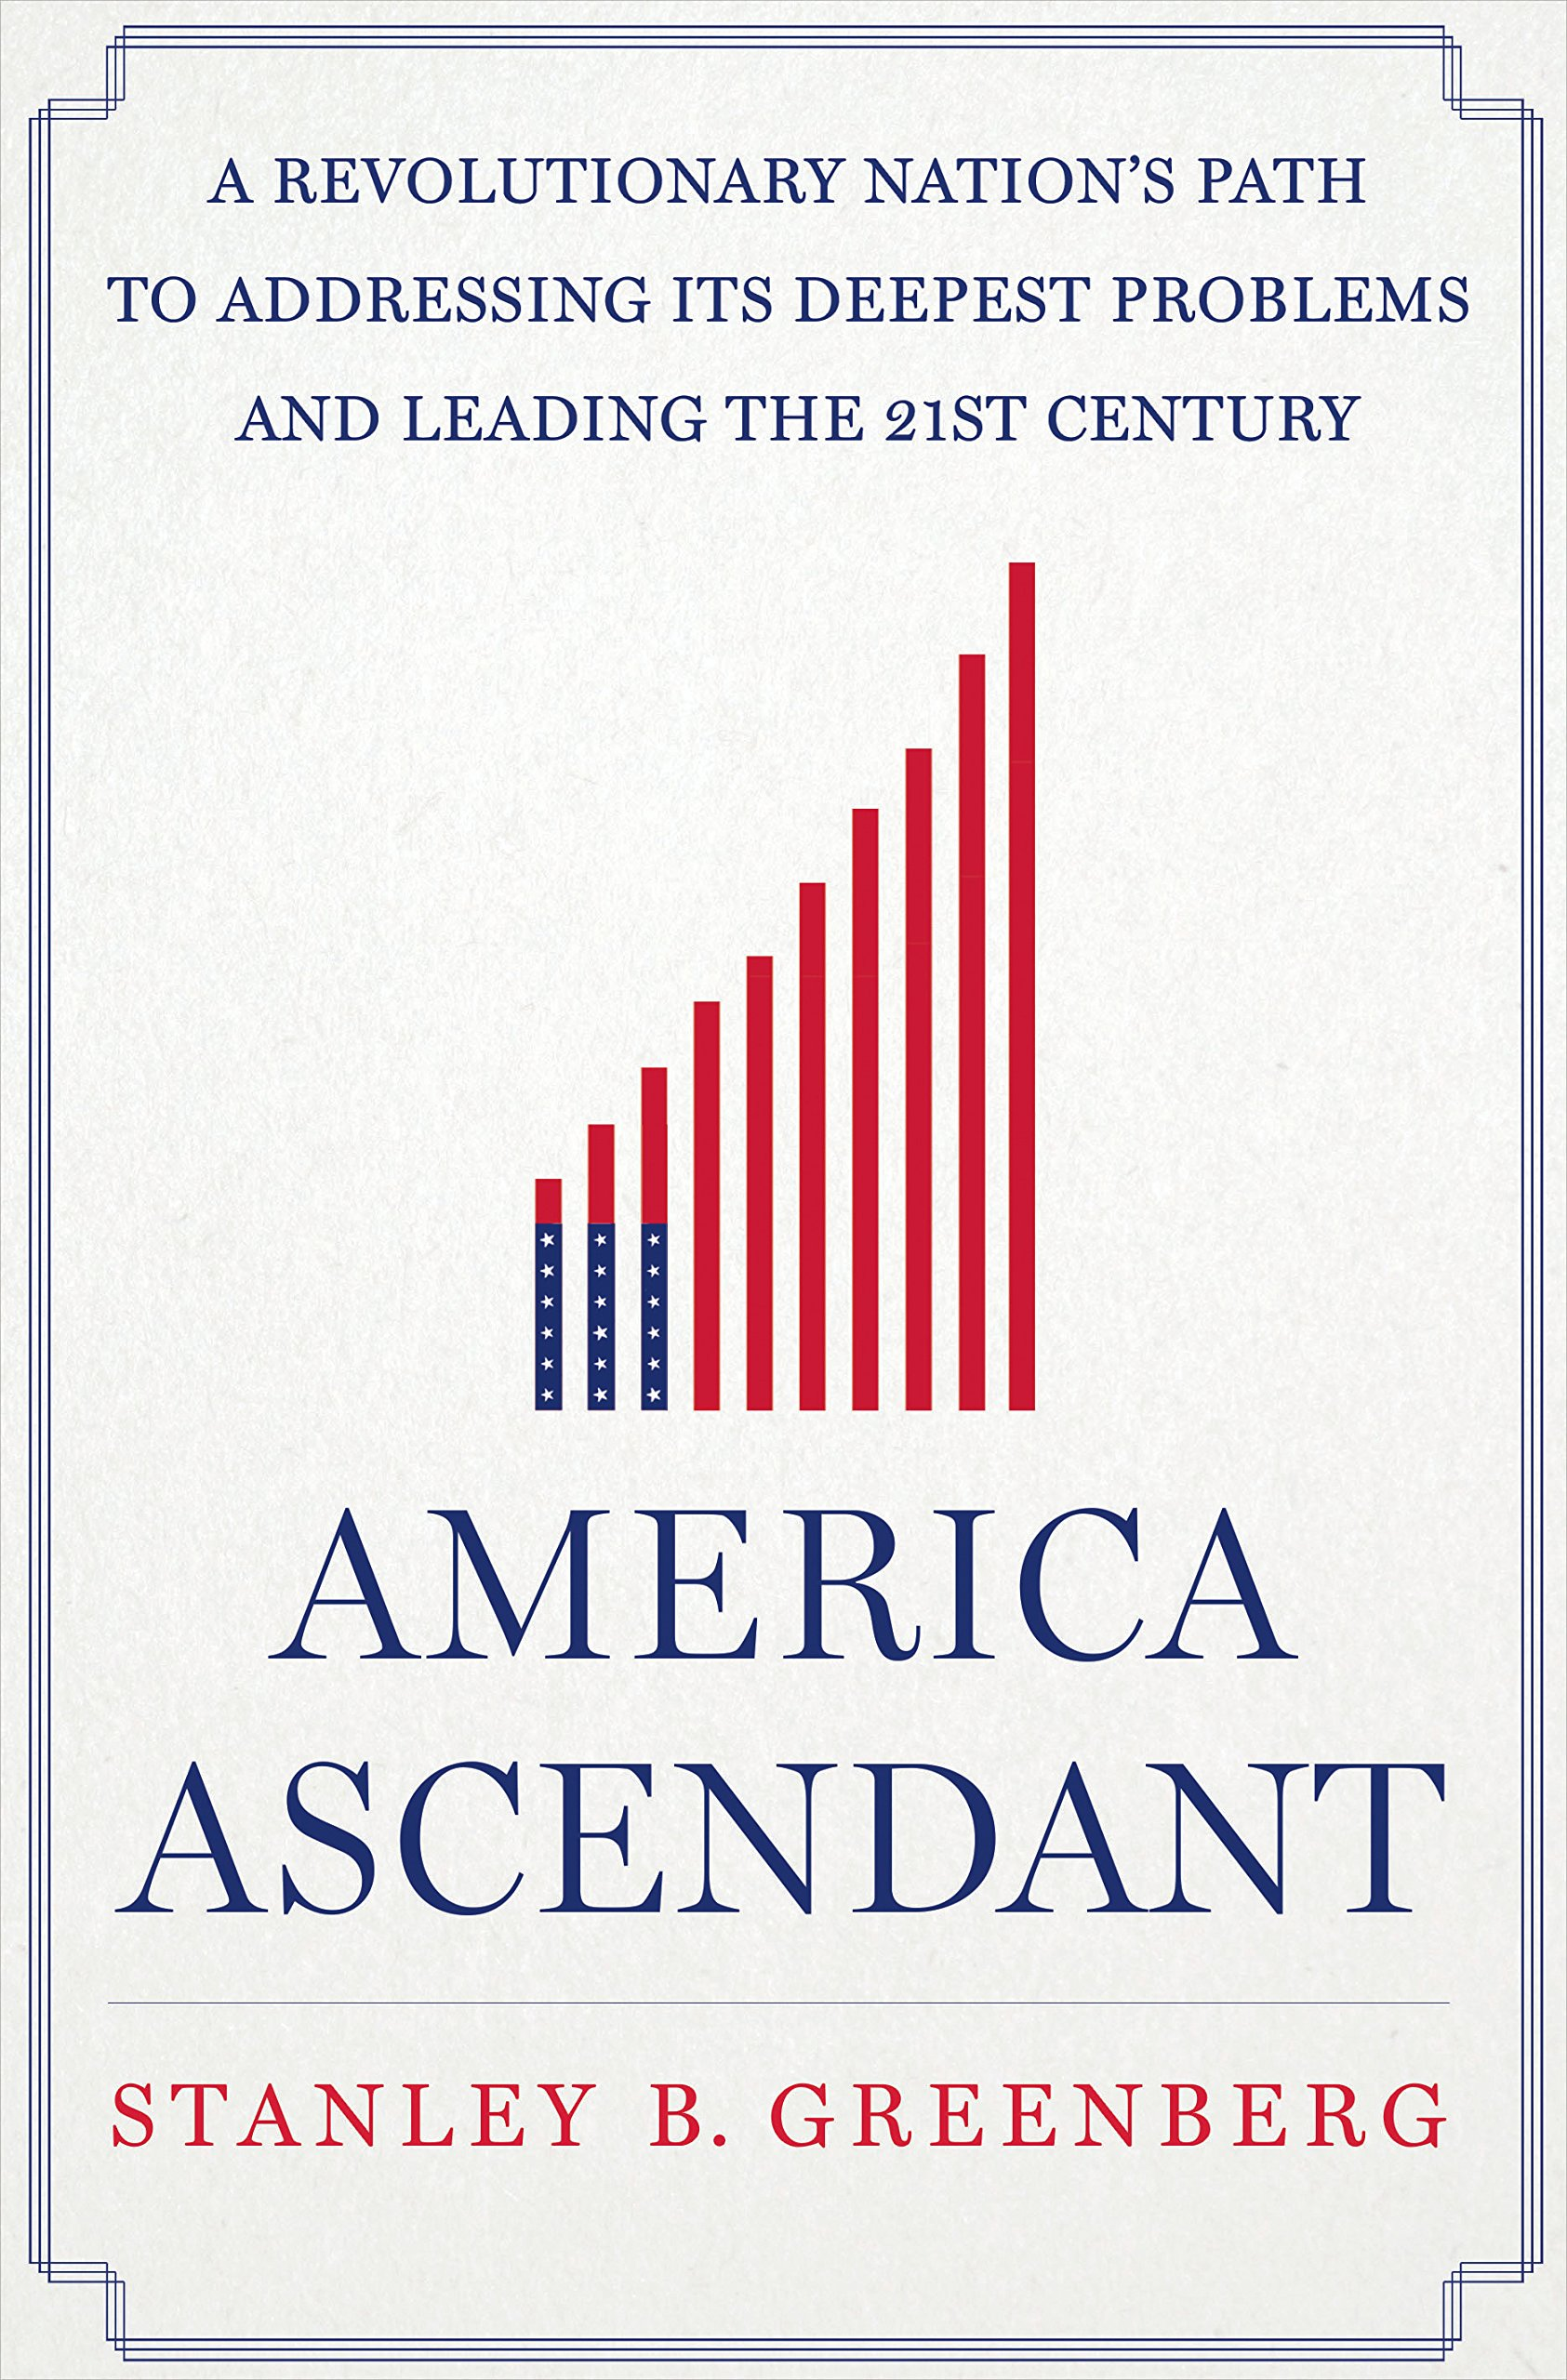 Image OfAmerica Ascendant: A Revolutionary Nation's Path To Addressing Its Deepest Problems And Leading The 21st Century (English ...